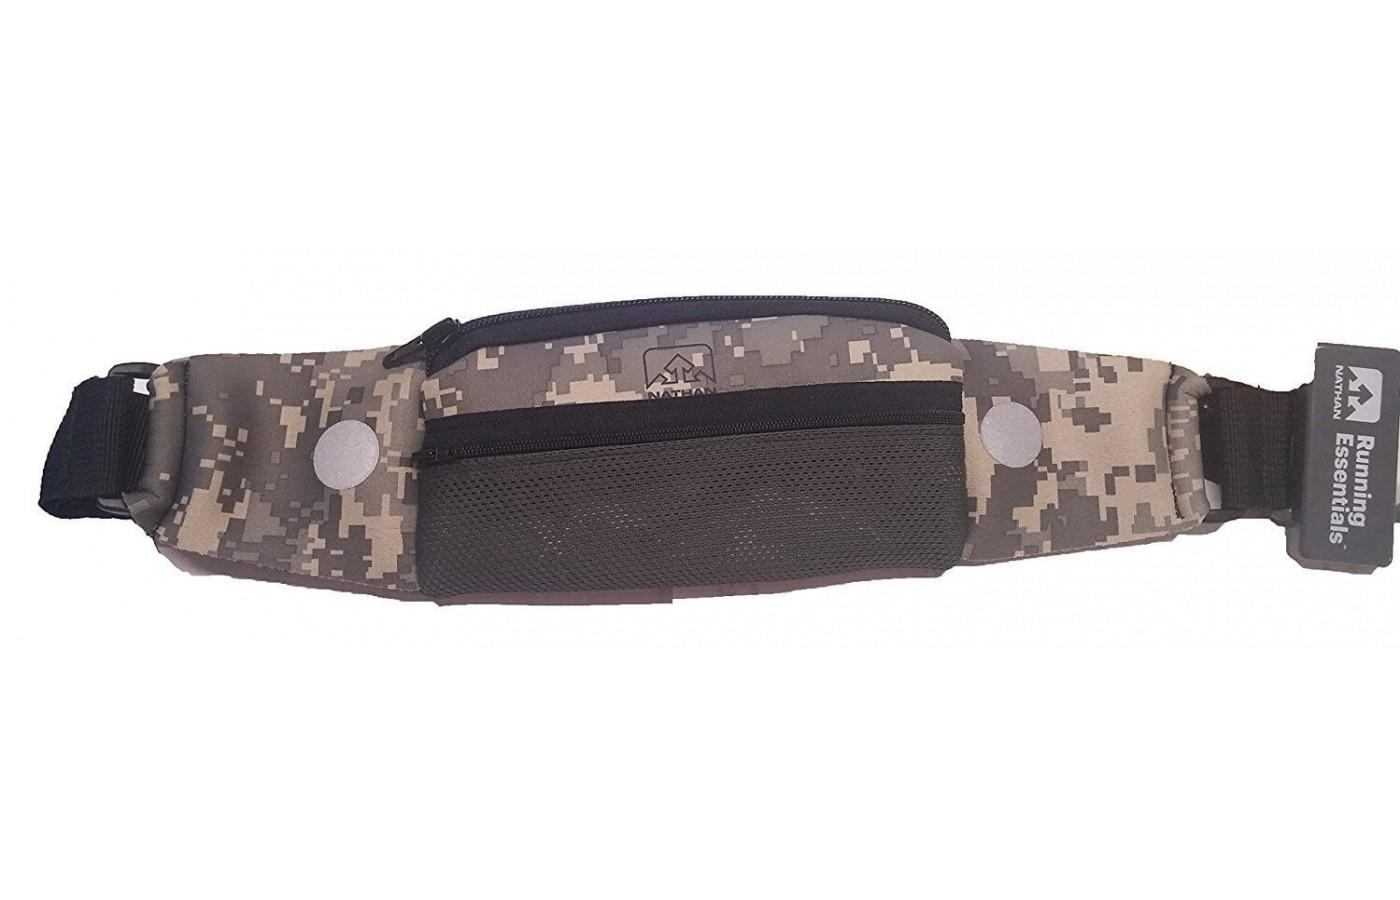 The Nathan 5K Runner's Pack in Camo